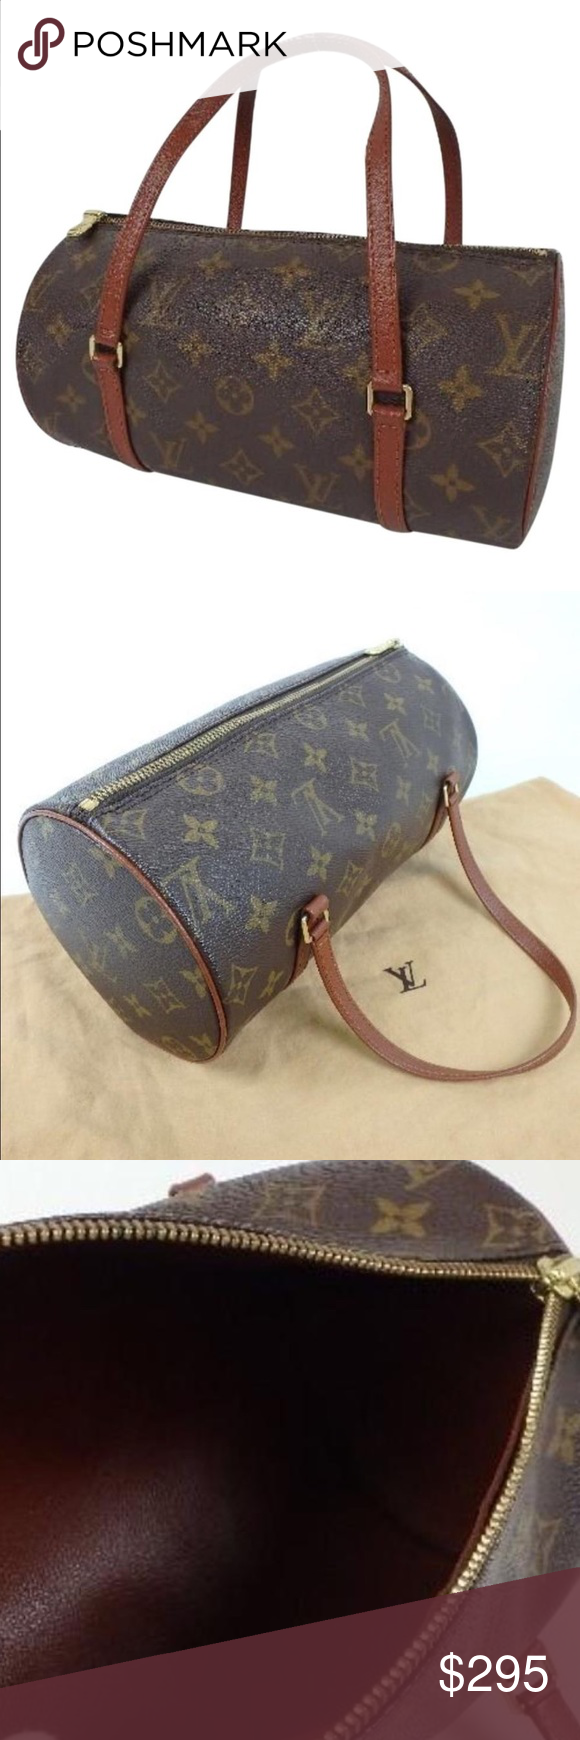 e15daadd5456b LV Papillon 26 LIKE NEW This is just beautiful! EUC Louis Vuitton Papillon  26.